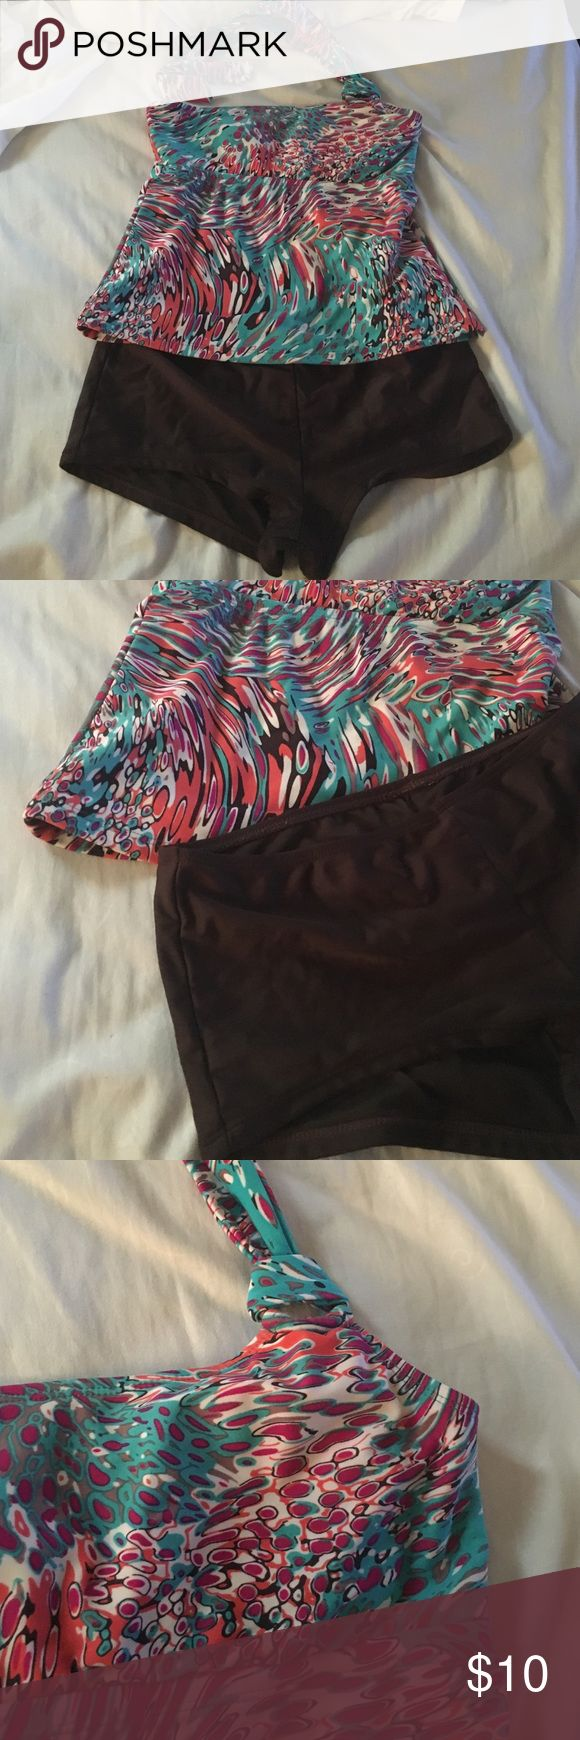 Tankini Tankini with brown boy short bottoms. Top has abstract pattern with brown, teal, orange, purple, and cream colors. Tags have been cut off but top is a small and bottoms are medium. Swim Bikinis